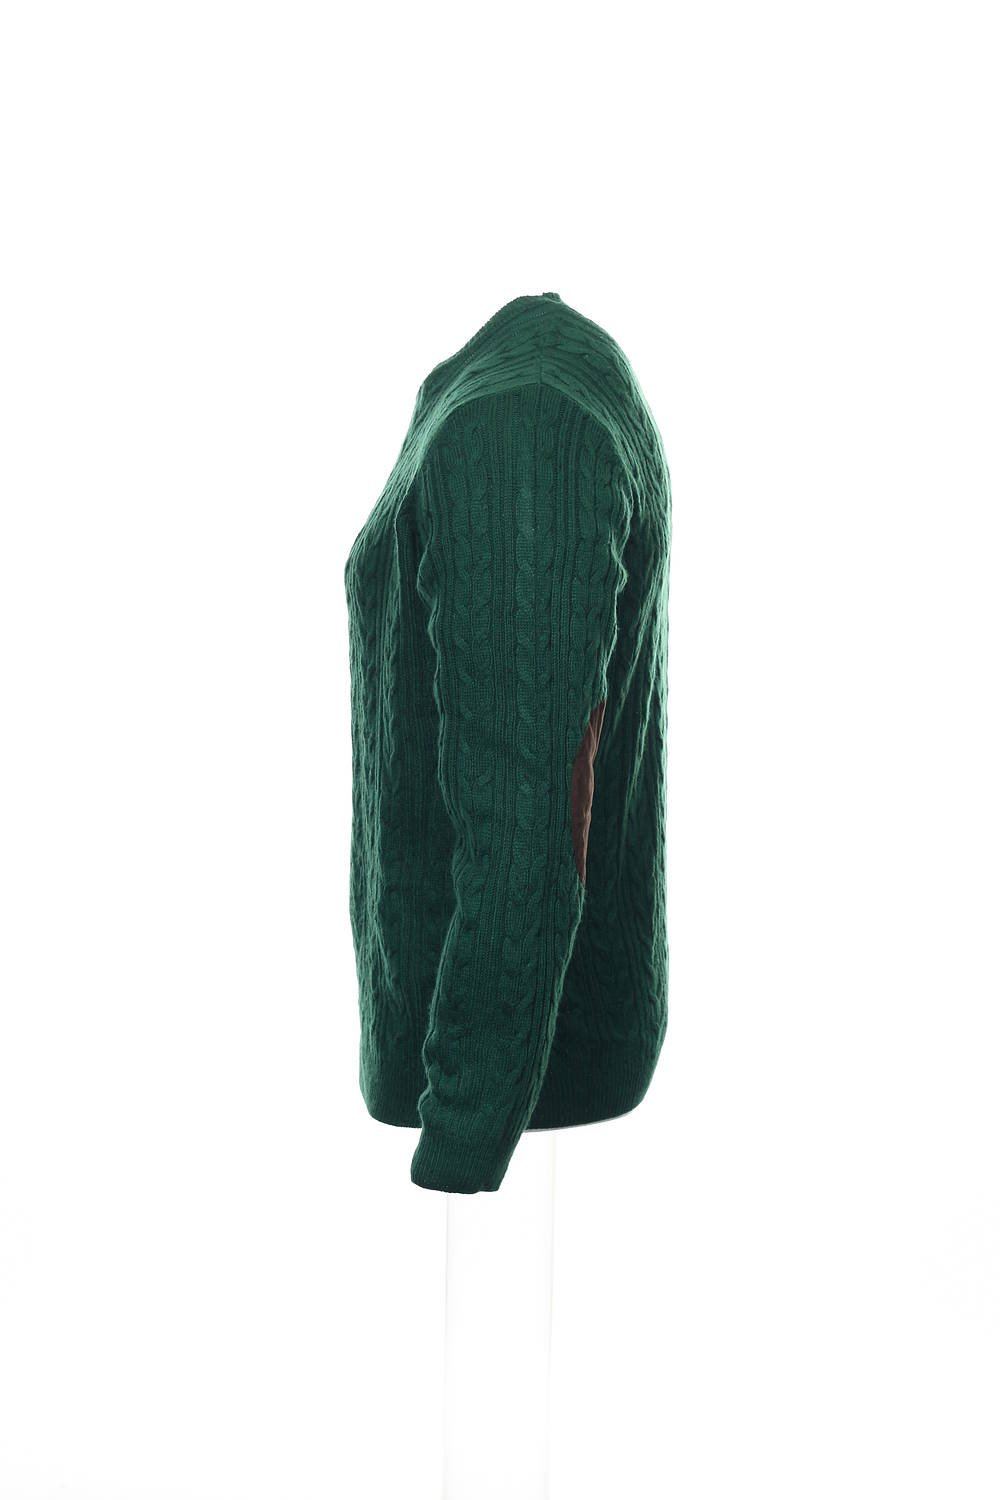 Argyle Culture Pine Green Sweater Medium by Argyleculture by Russell Simmons (Image #2)